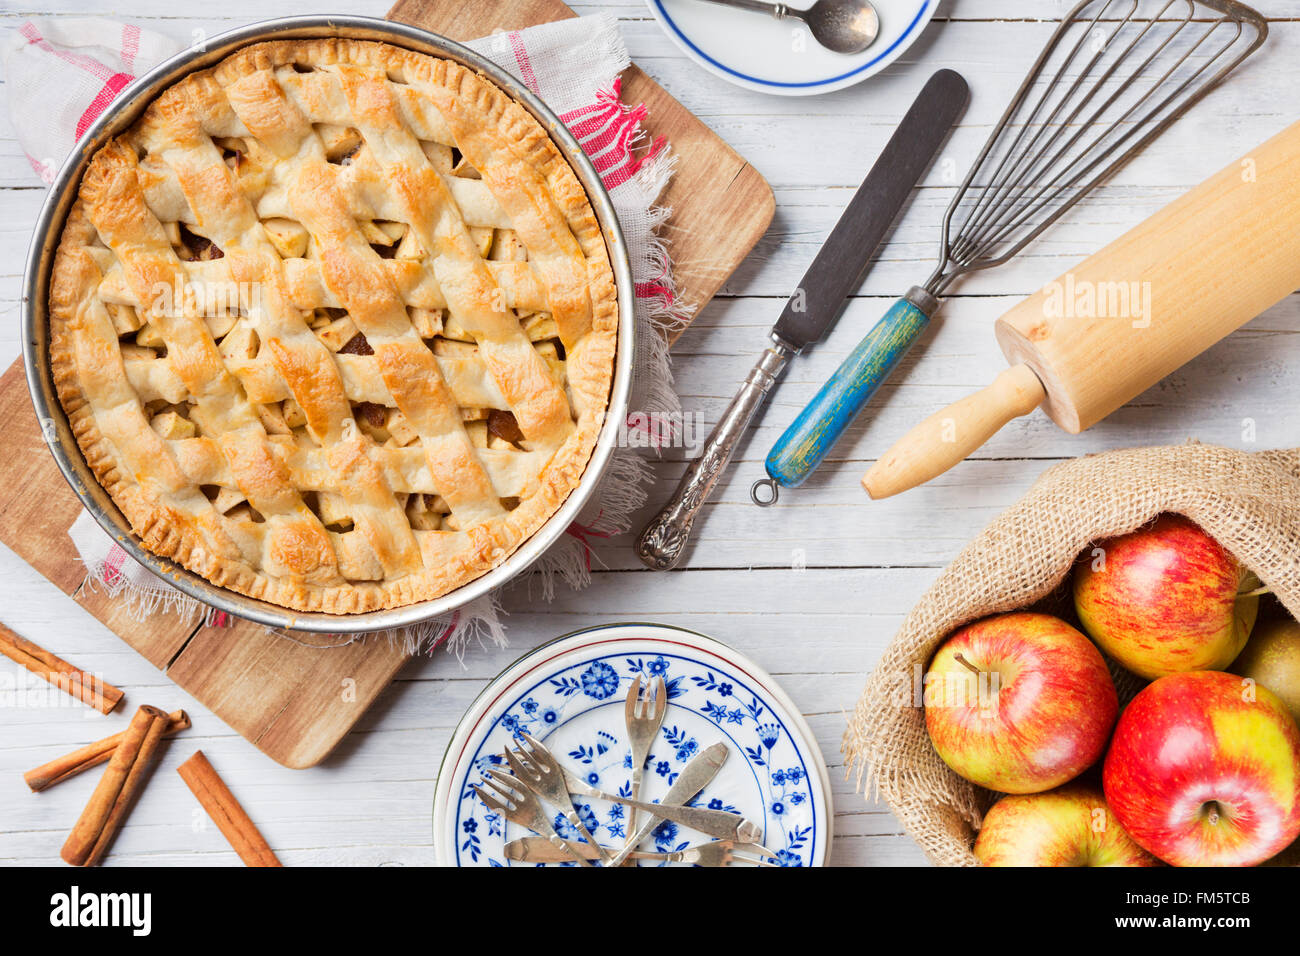 Homemade Dutch apple pie and ingredients on a rustic table. Photographed from directly above. - Stock Image